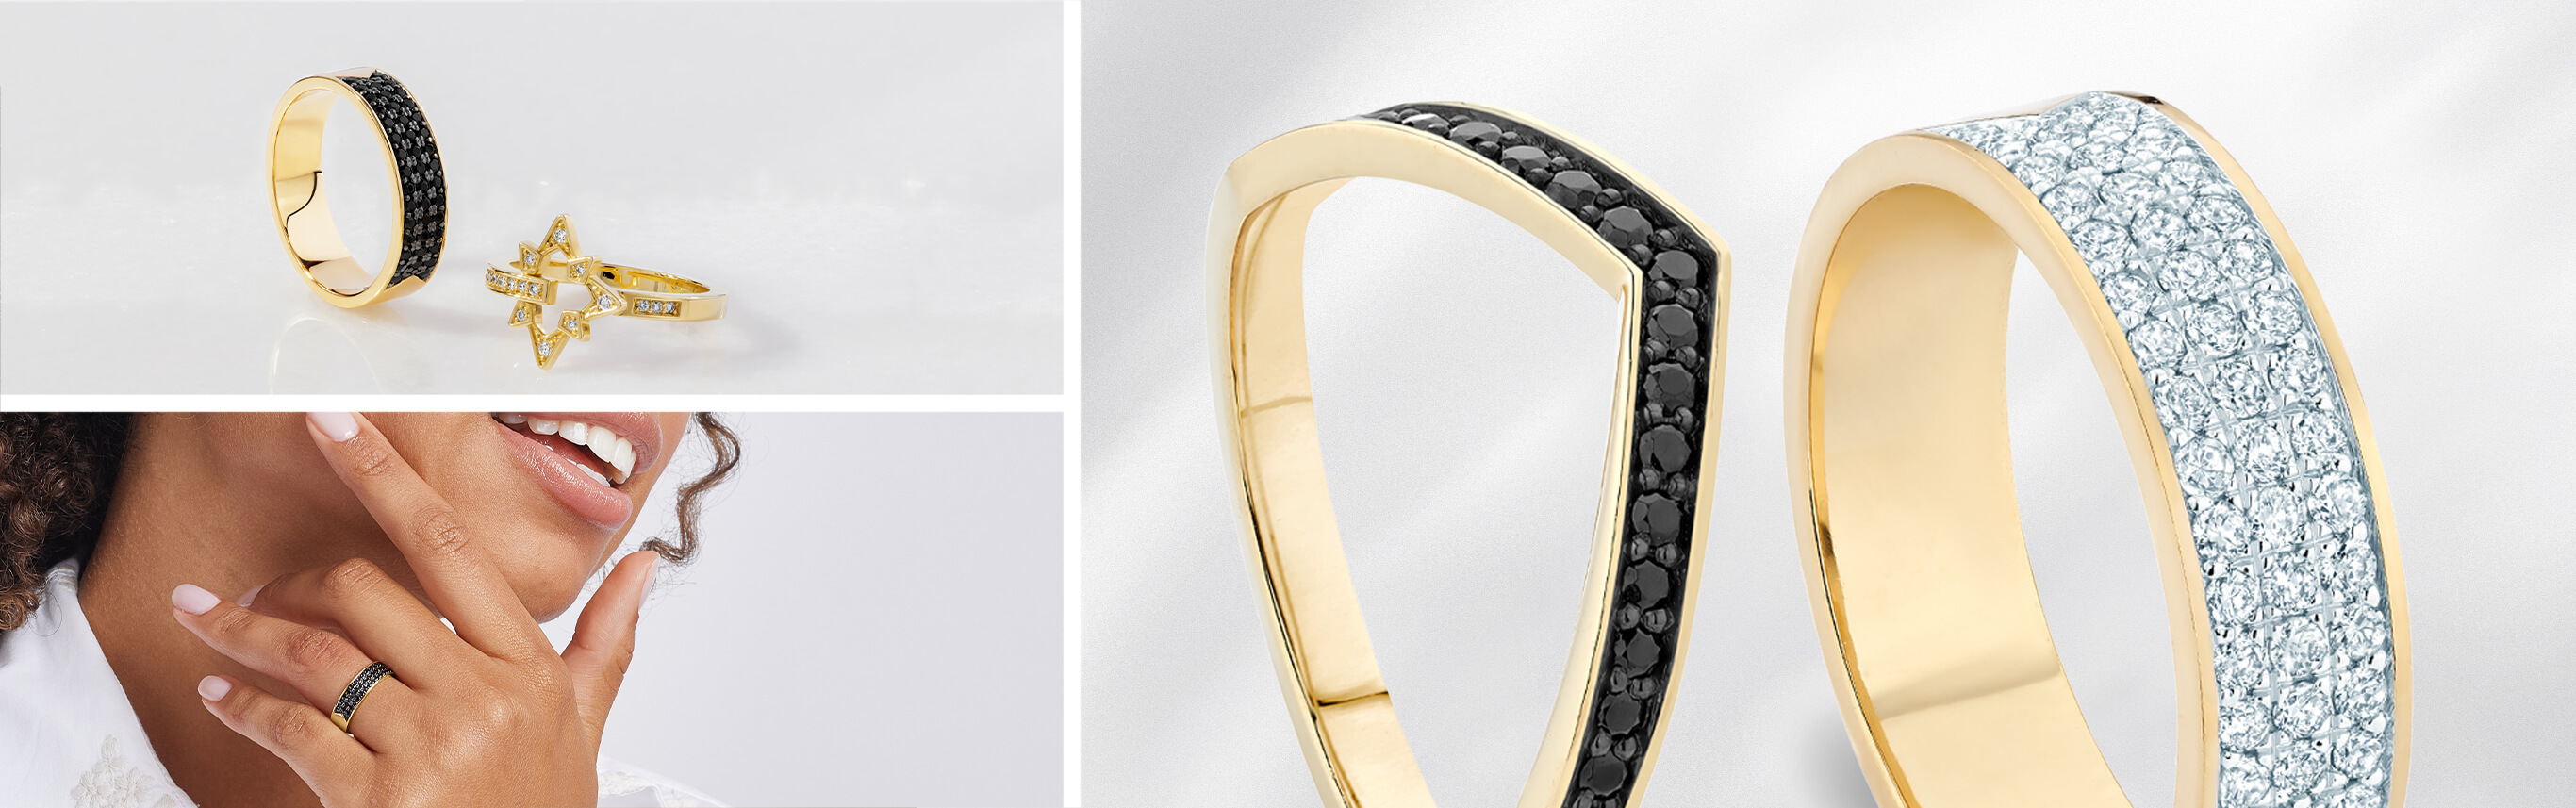 Jewellery Pieces from Ecksand's North Collection